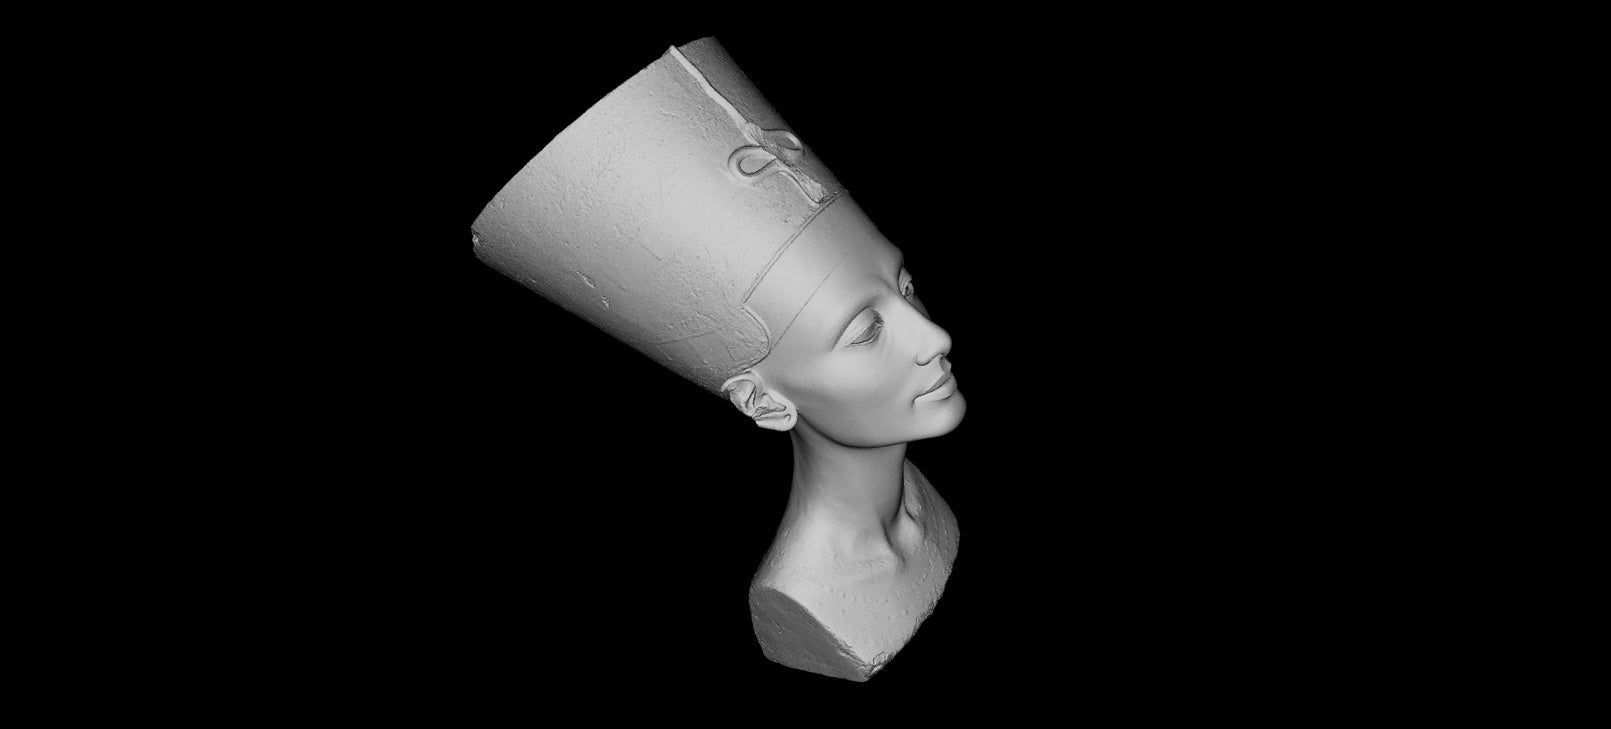 Artists Have Secretly 3D-Scanned Nefertiti's Bust For Anyone to Print